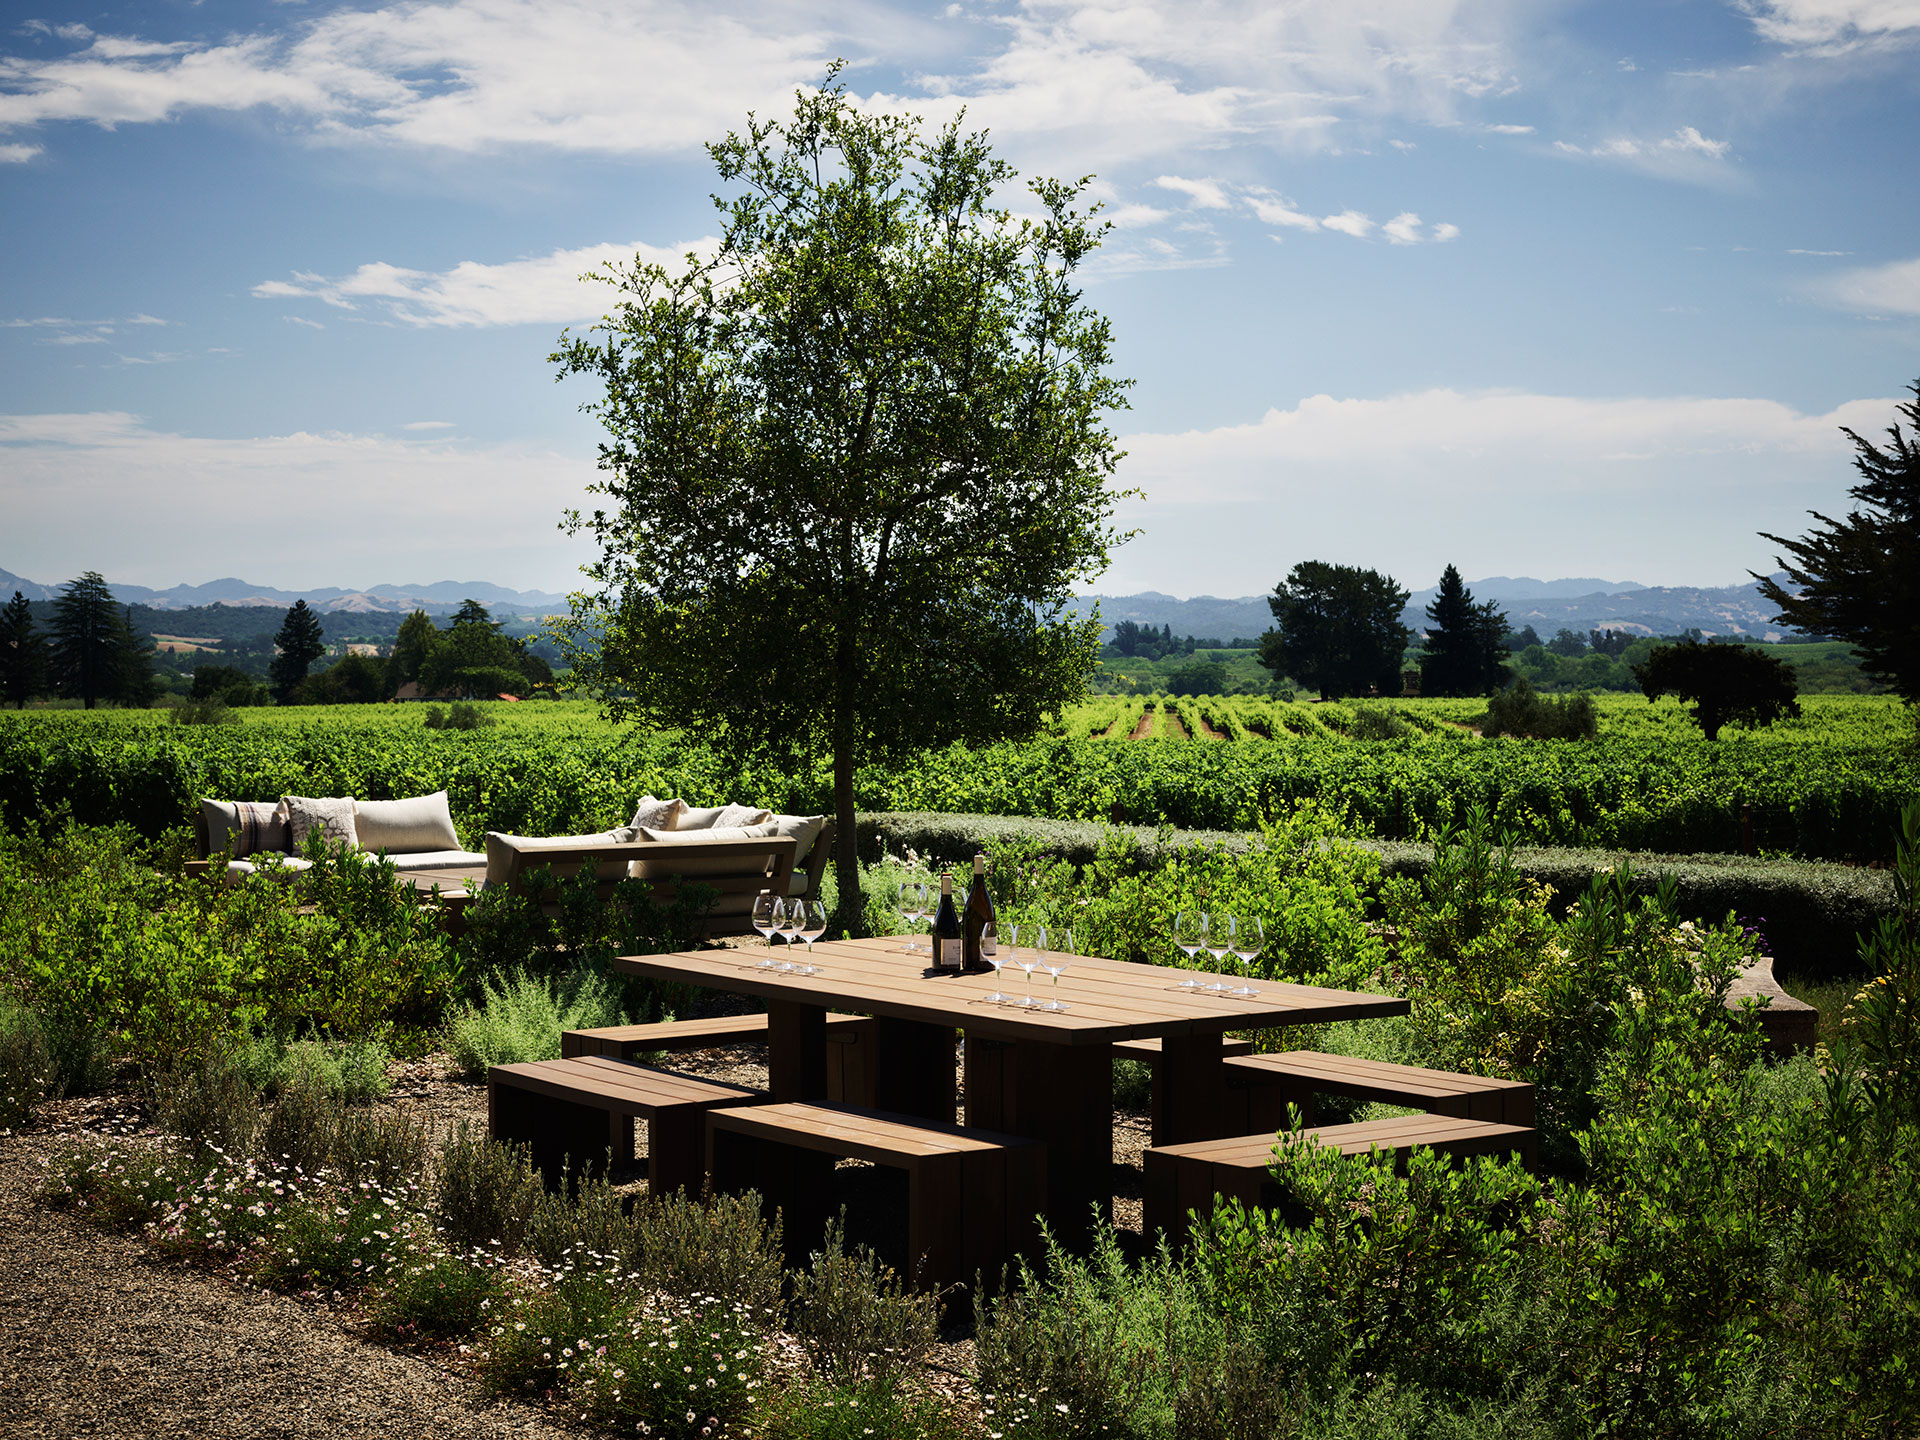 House of Flowers, Flowers Vineyard & Winery. Photography by Douglas Friedman.